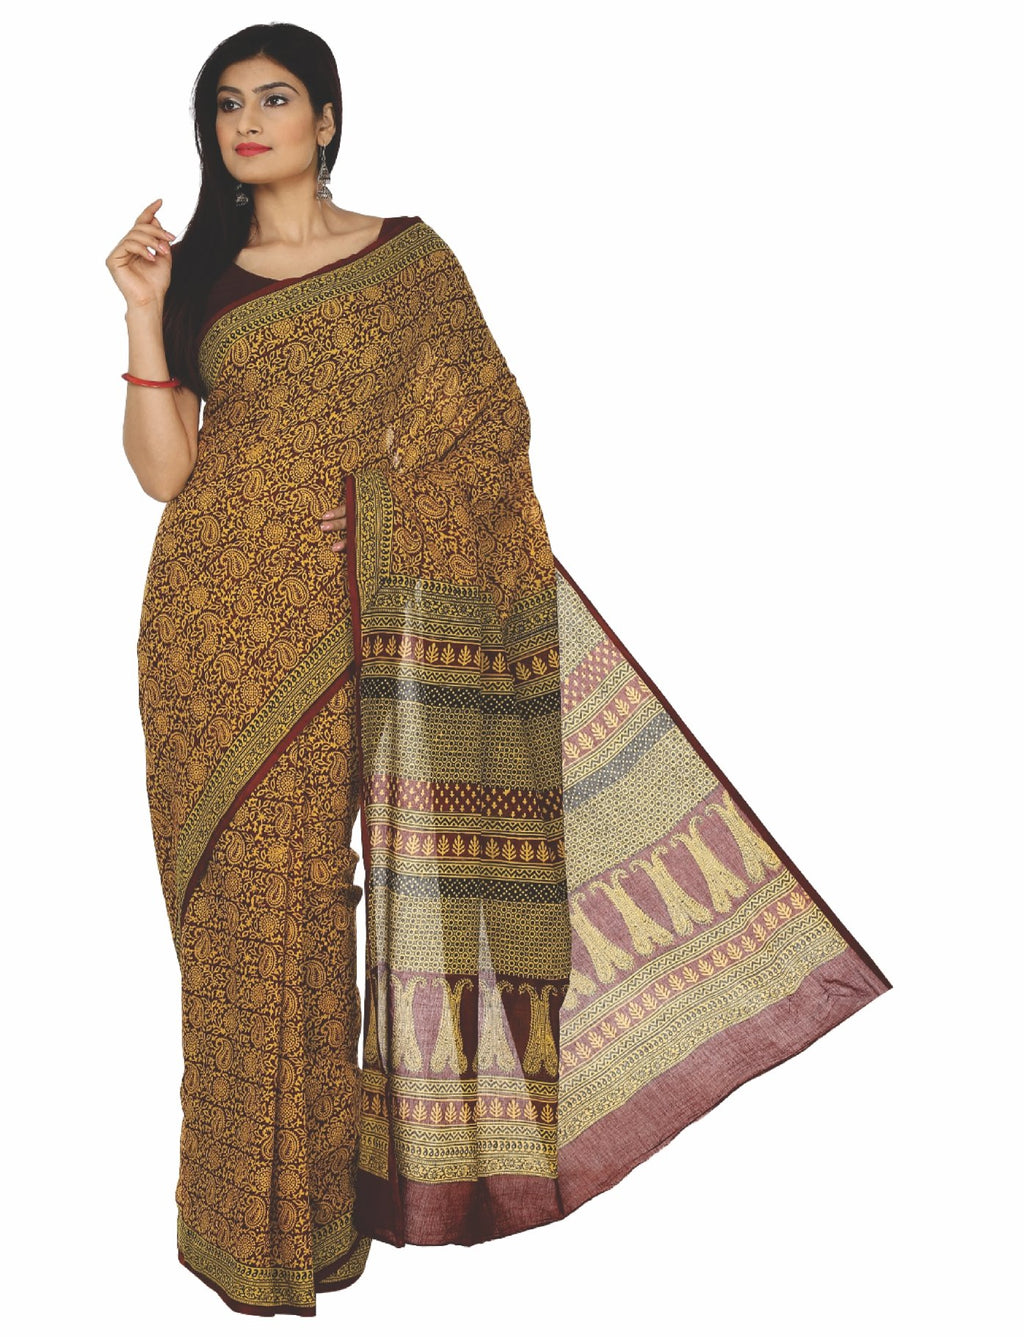 Kalakari India Mustard Yellow Bagh Hand block Print Handcrafted Cotton Saree-Saree-Kalakari India-ZIBASA0025-Bagh, Cotton, Geographical Indication, Hand Blocks, Hand Crafted, Heritage Prints, Natural Dyes, Sarees, Sustainable Fabrics-[Linen,Ethnic,wear,Fashionista,Handloom,Handicraft,Indigo,blockprint,block,print,Cotton,Chanderi,Blue, latest,classy,party,bollywood,trendy,summer,style,traditional,formal,elegant,unique,style,hand,block,print, dabu,booti,gift,present,glamorous,affordable,collectibl